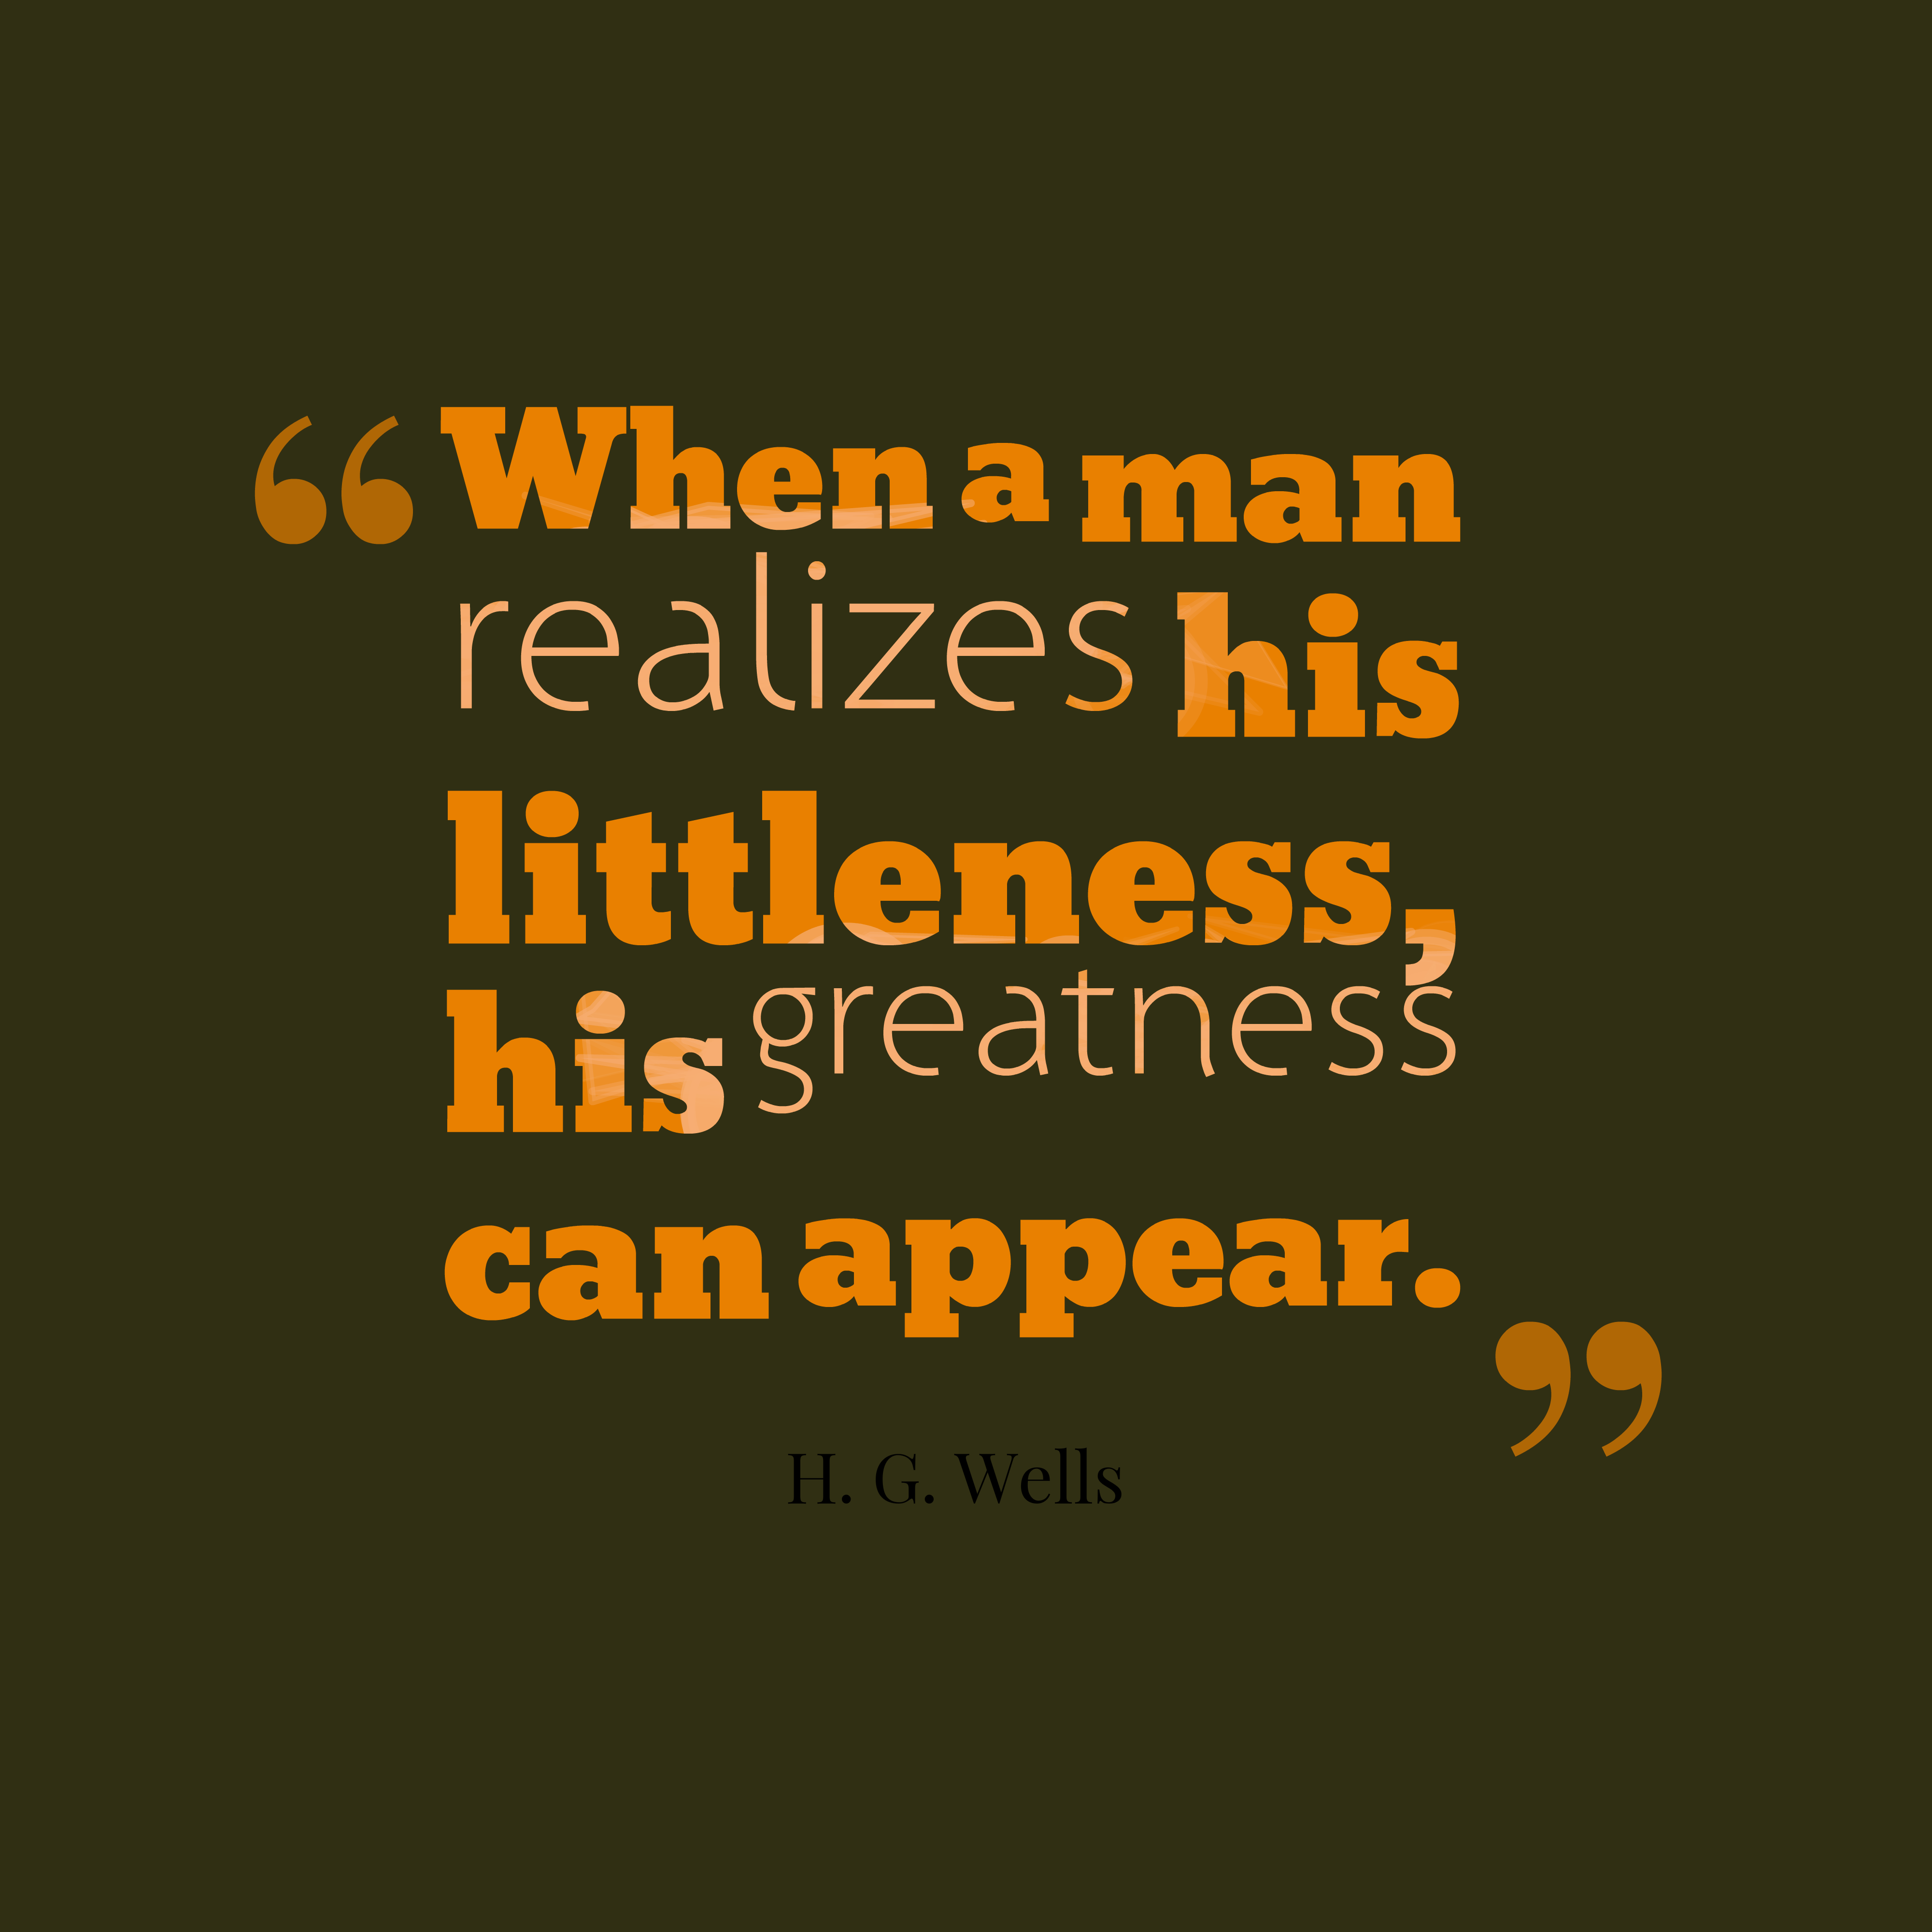 Quotes image of When a man realizes his littleness, his greatness can appear.